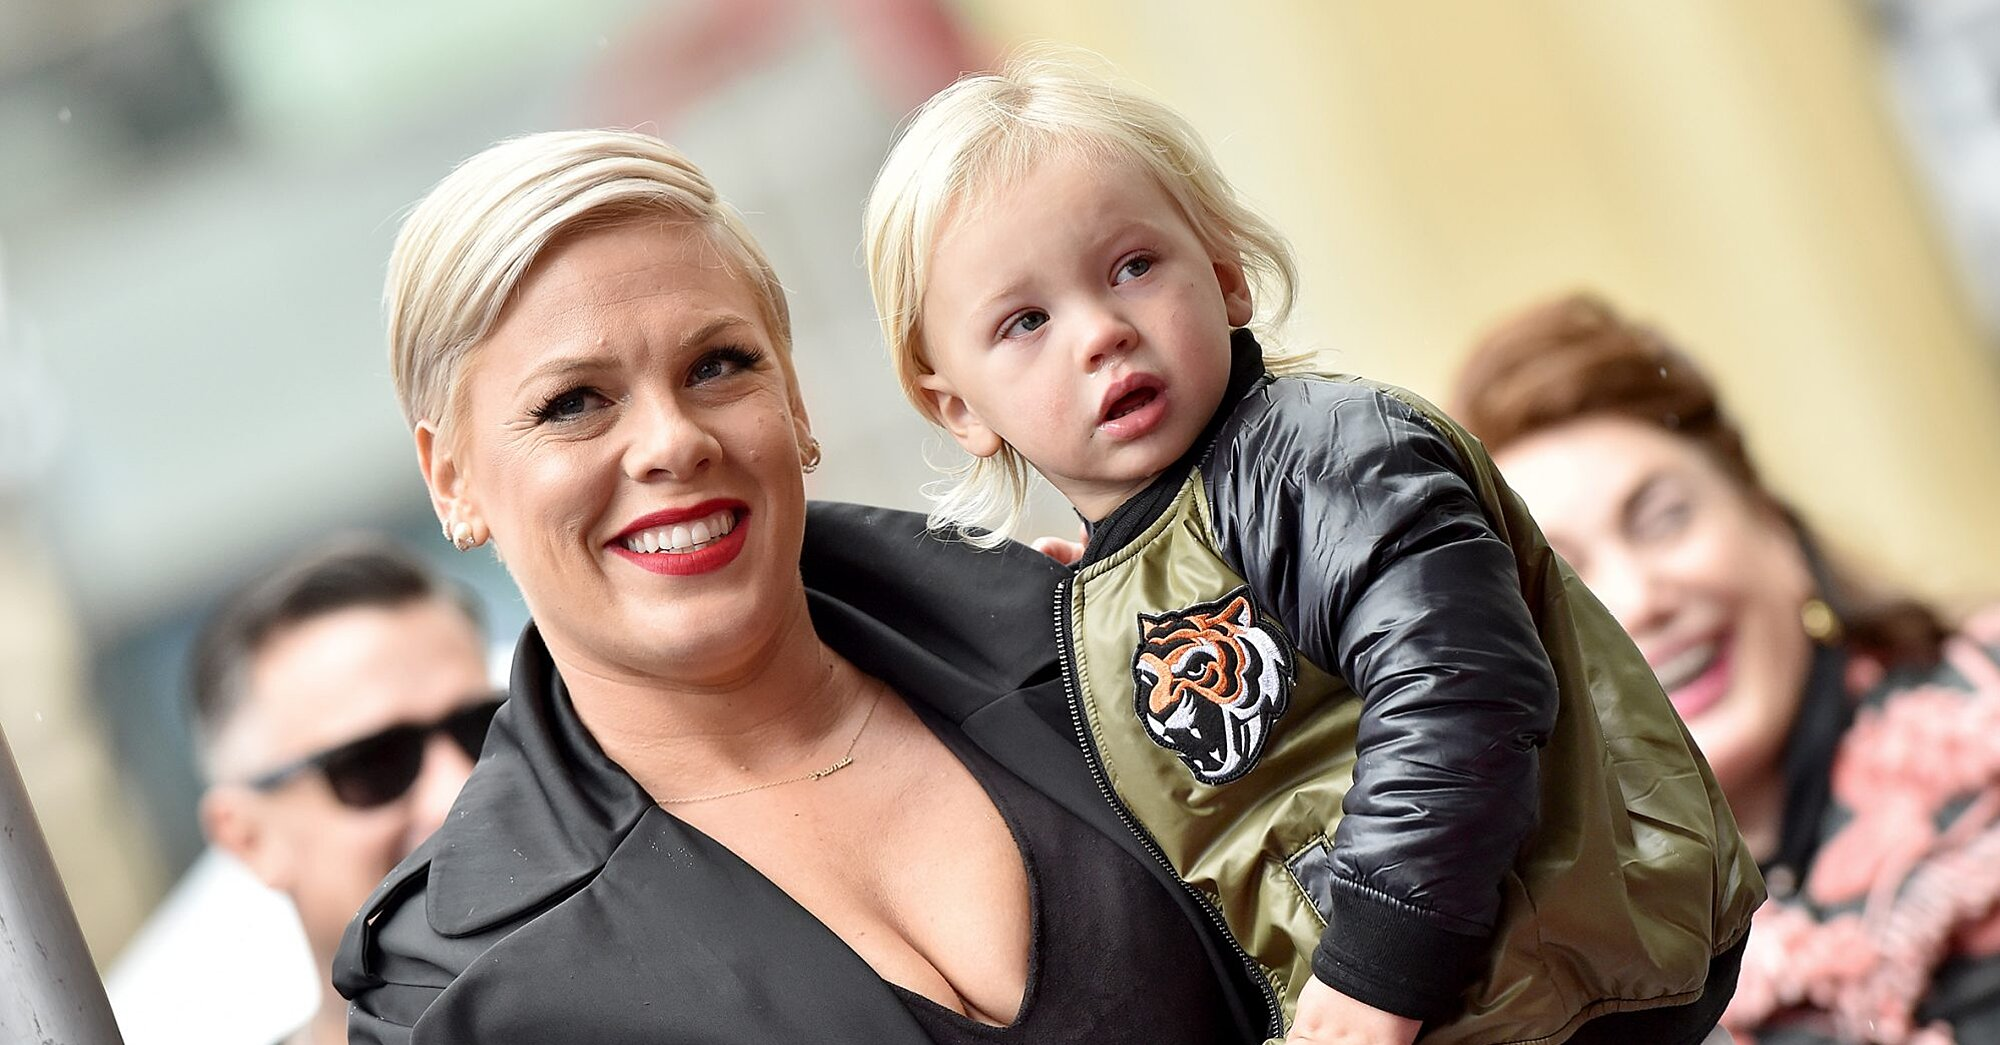 Pink Reveals She and Her 3-Year-Old Son Tested Positive for Coronavirus